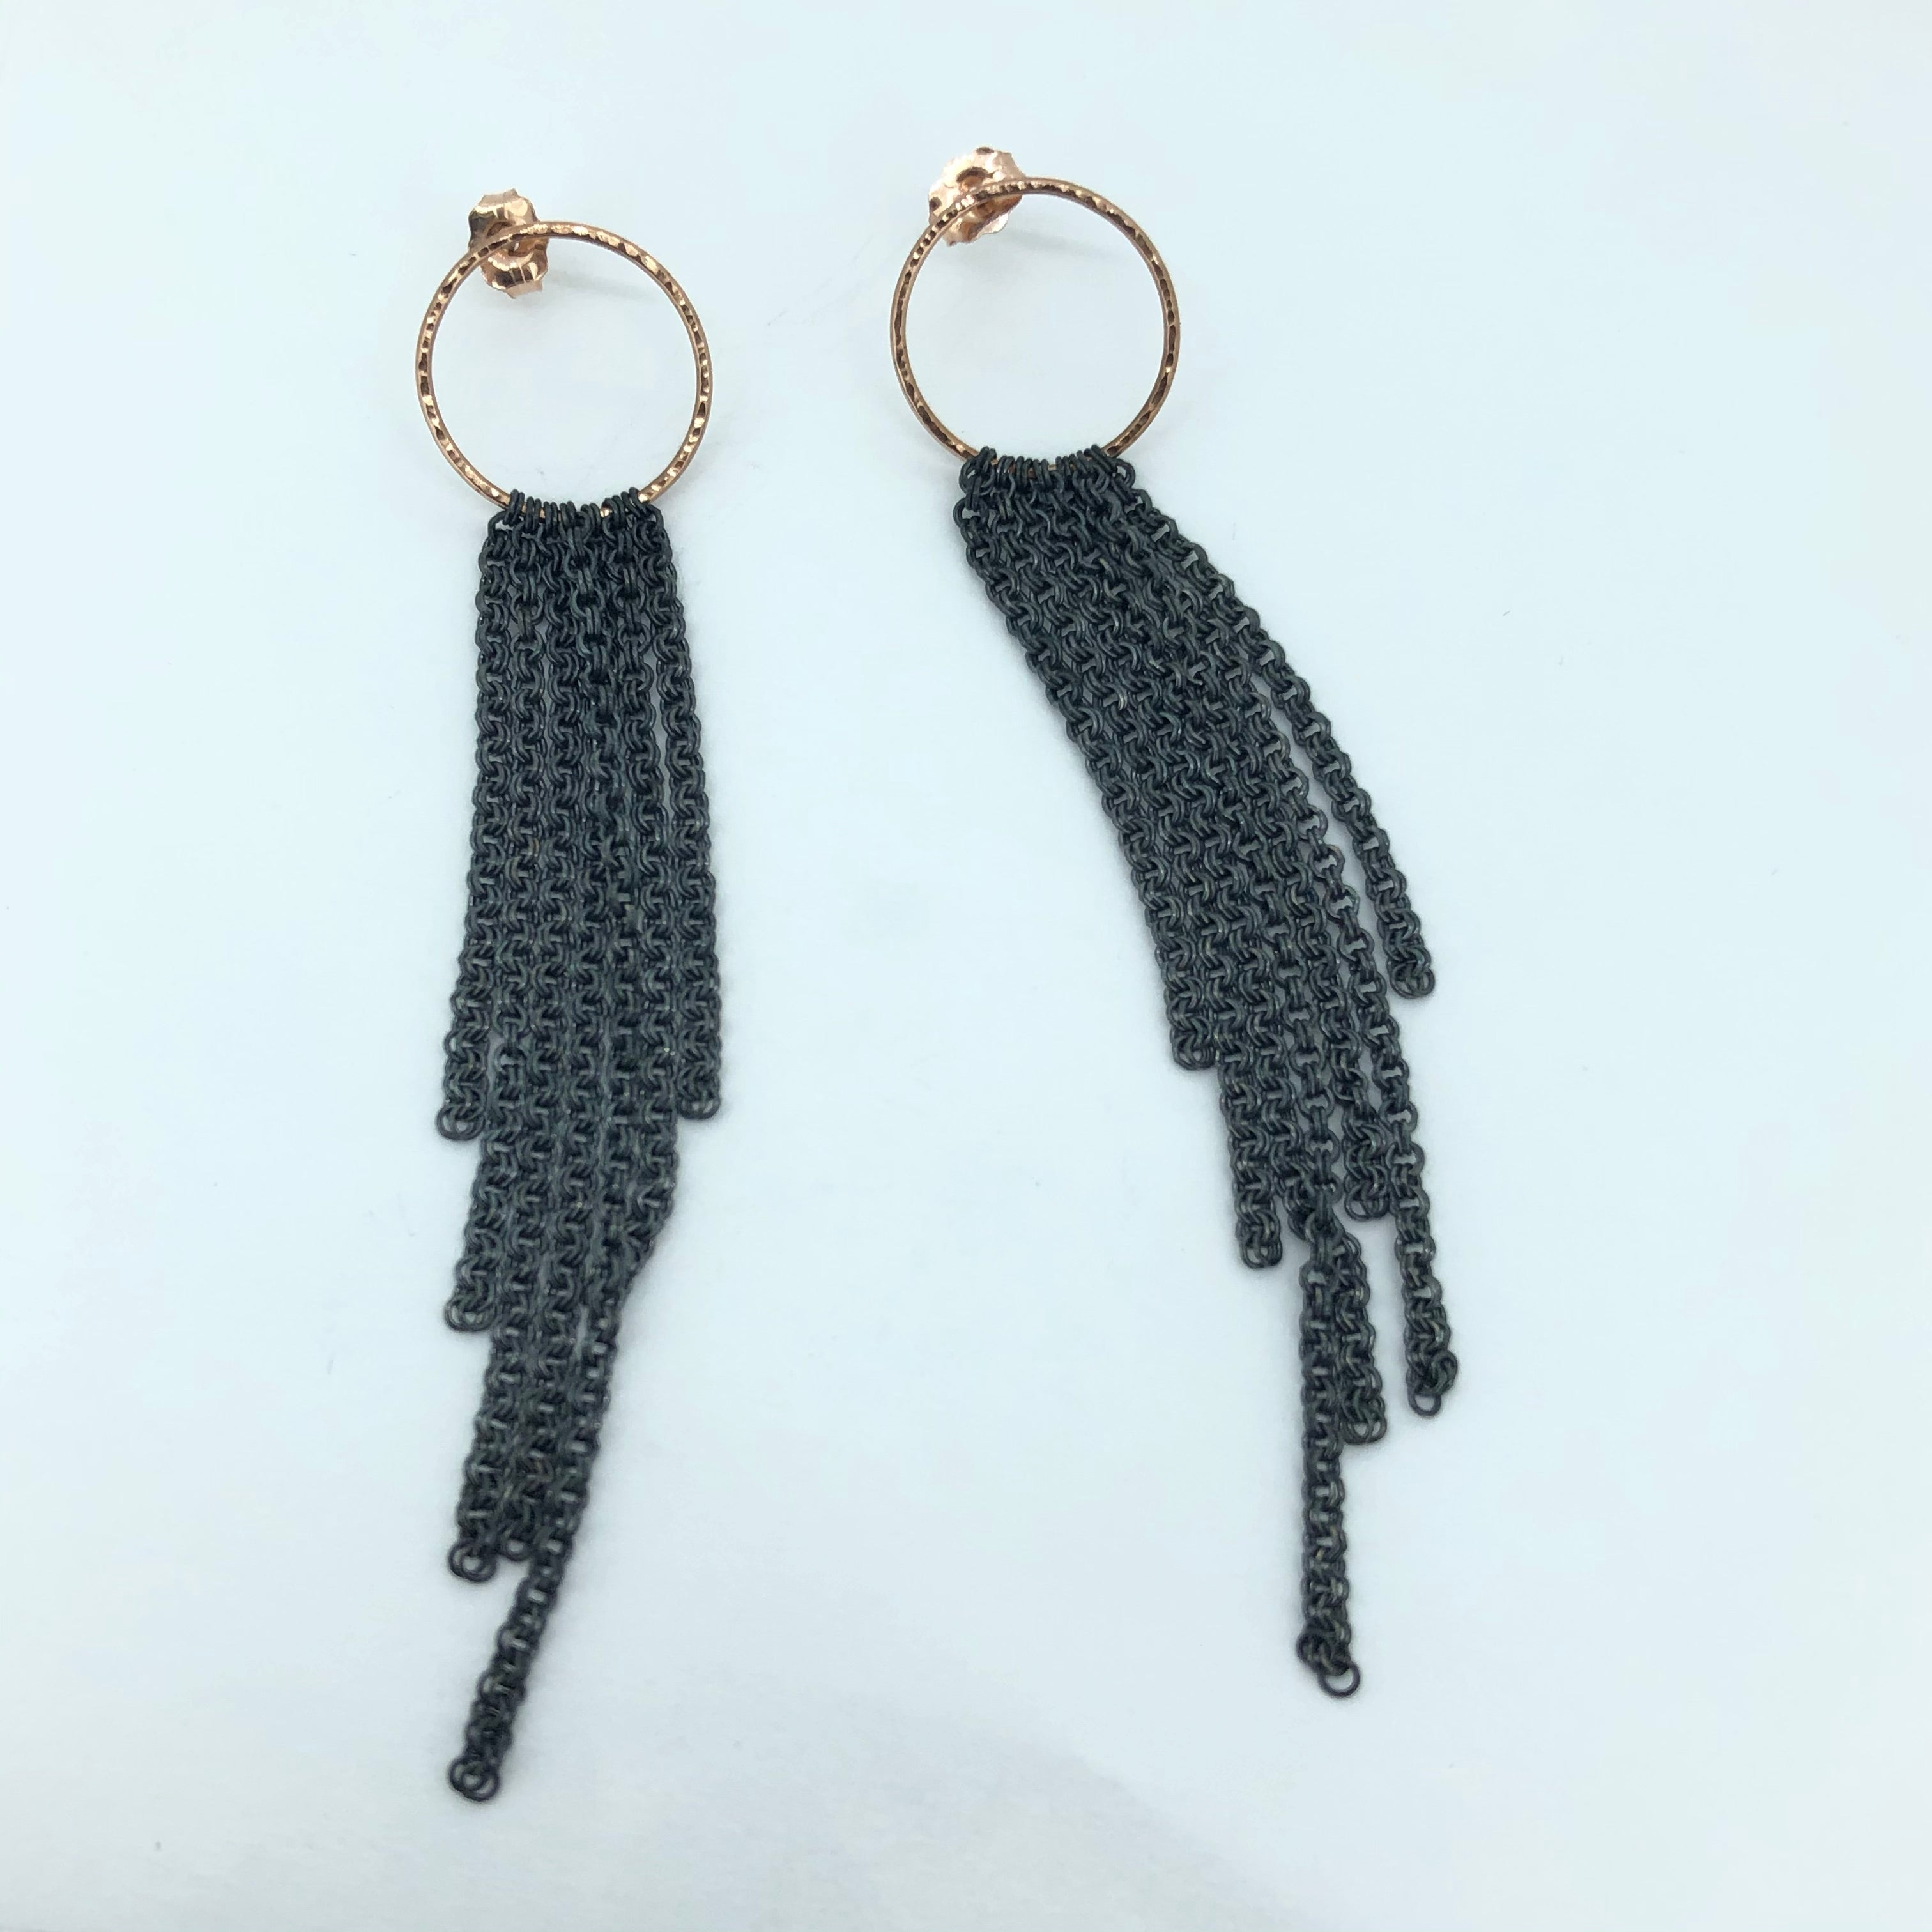 14k Rose Gold and oxidized sterling earrings.